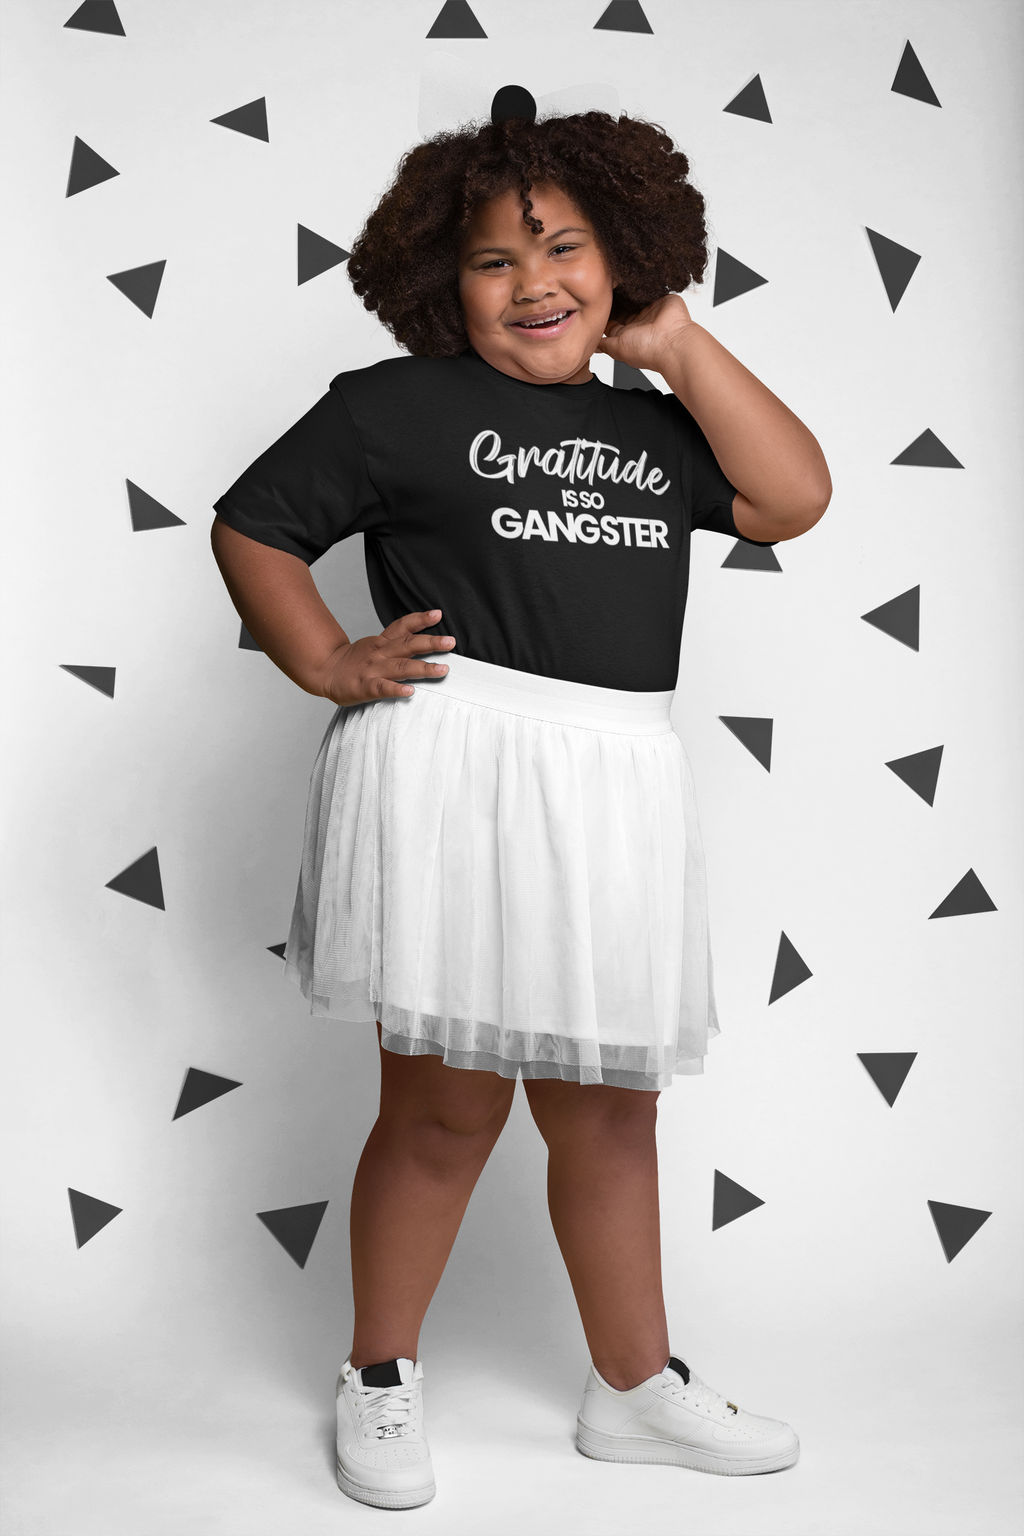 Gratitude Is So Gangster • Black + White Kid Tee